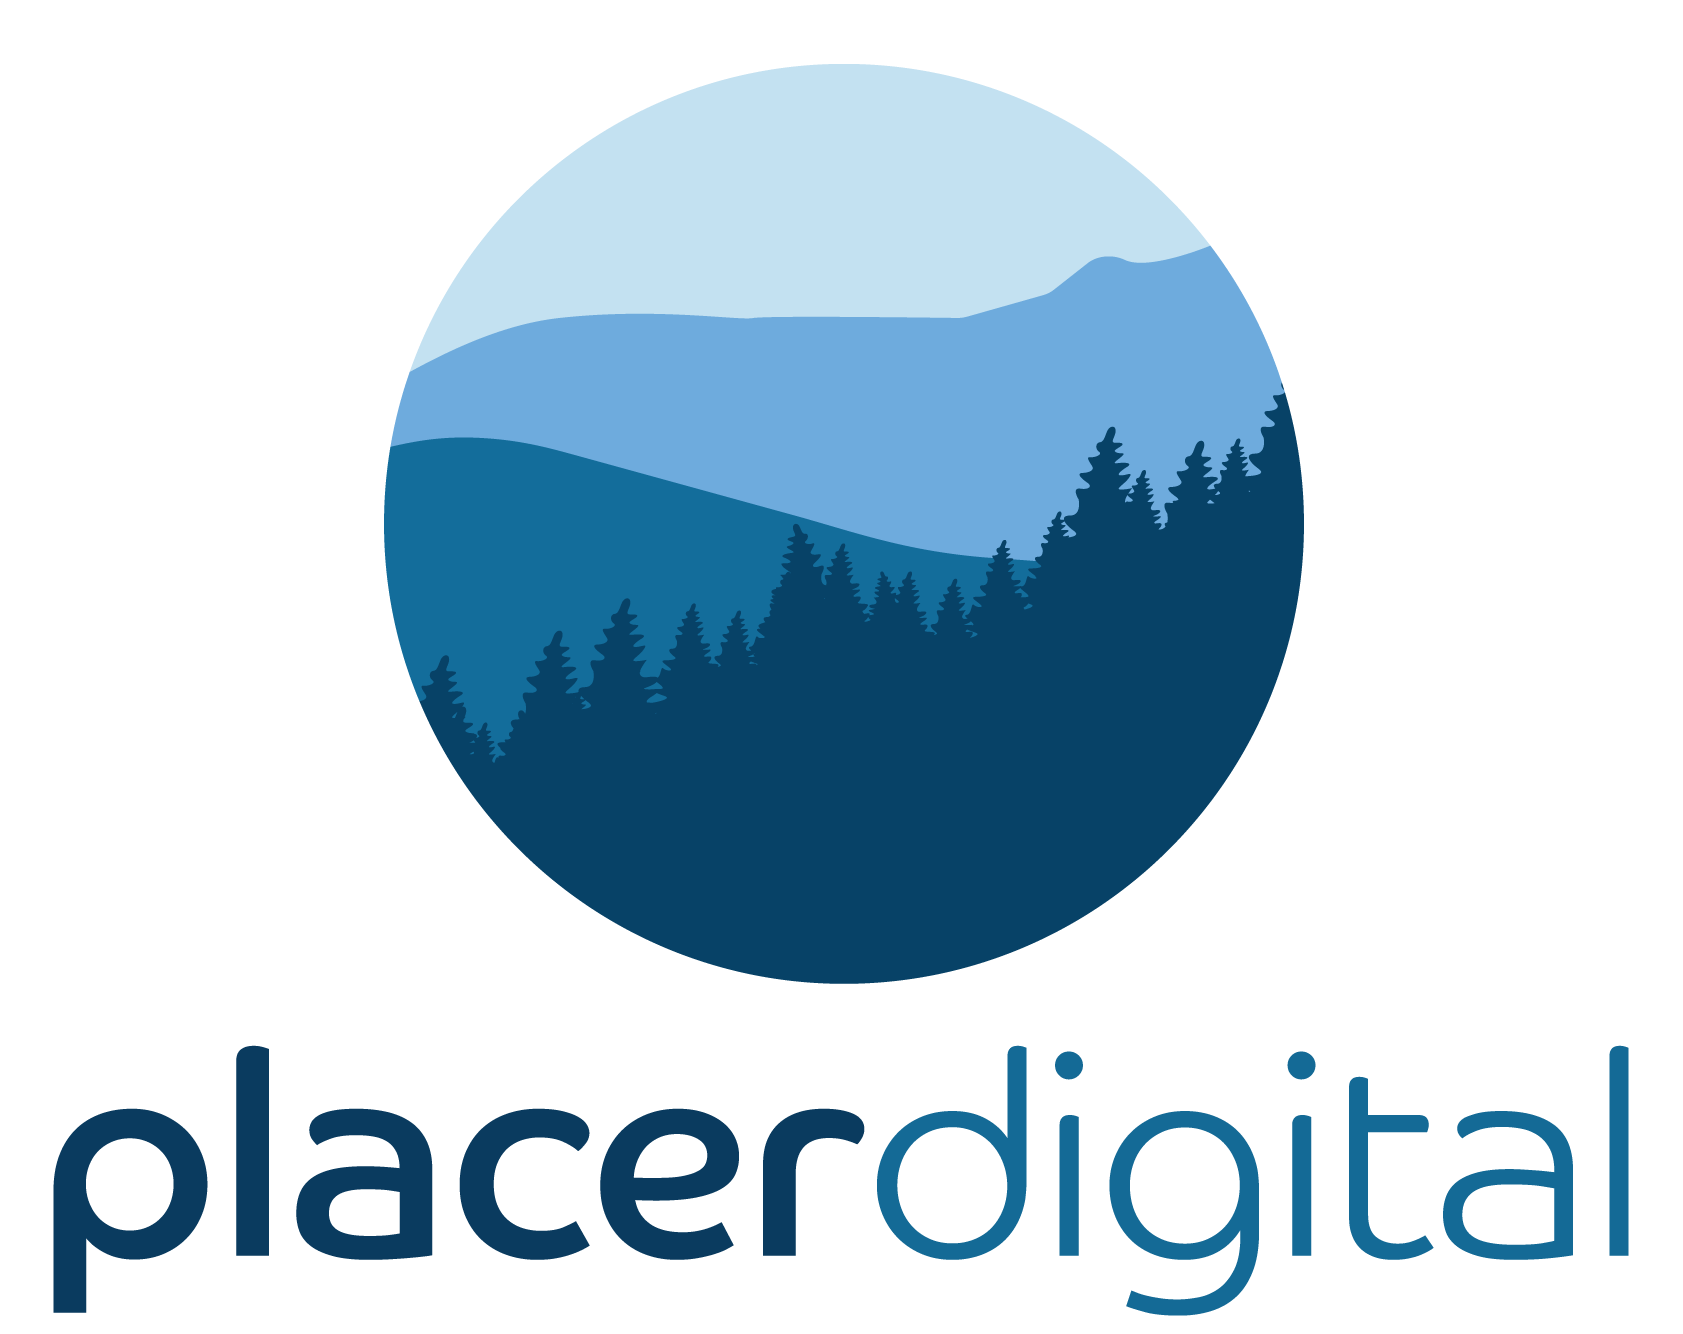 placer digital logo